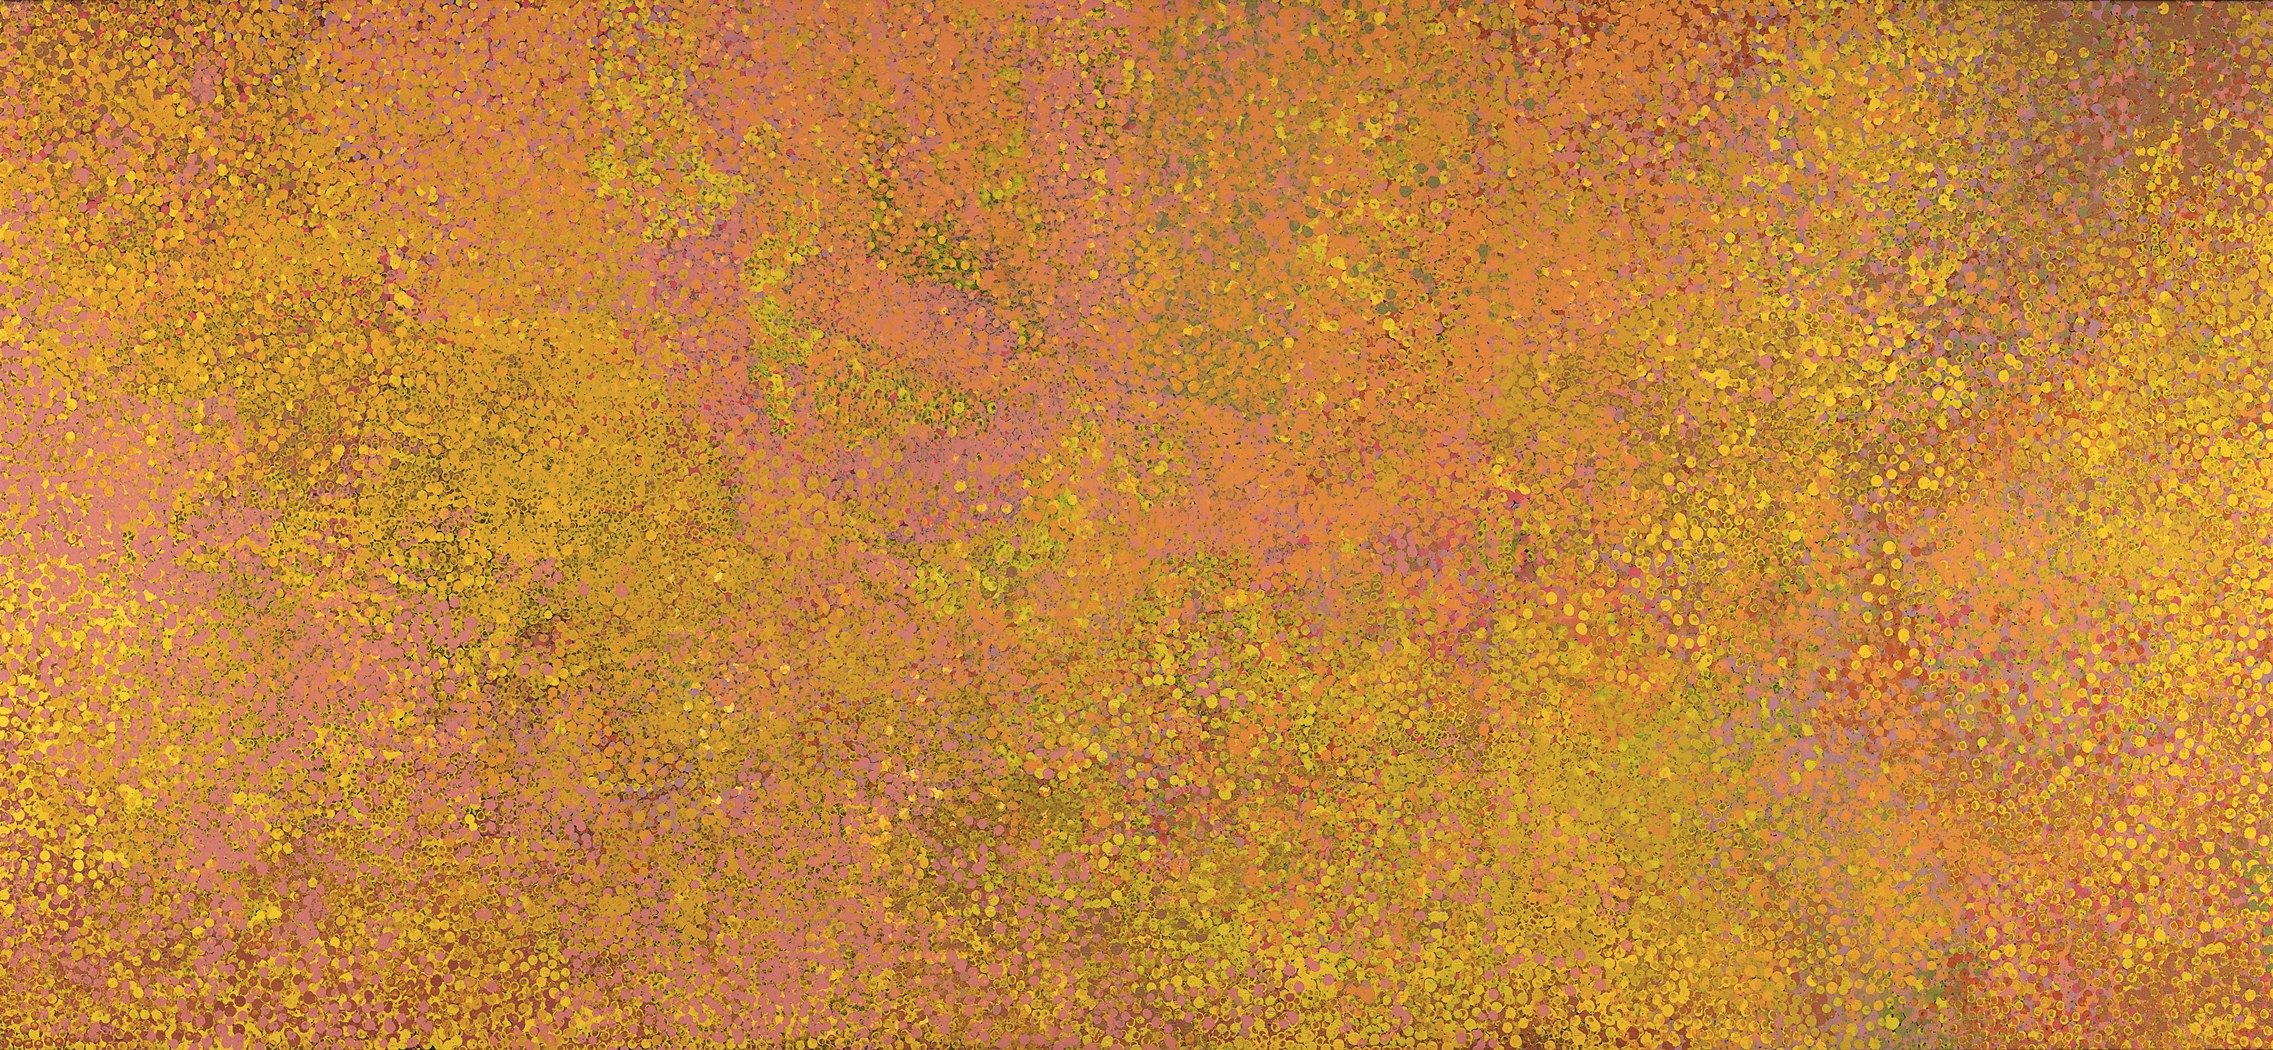 Kame-Summer Awelye II, a monumental December 1991 canvas by Emily Kame Kngwarreye.